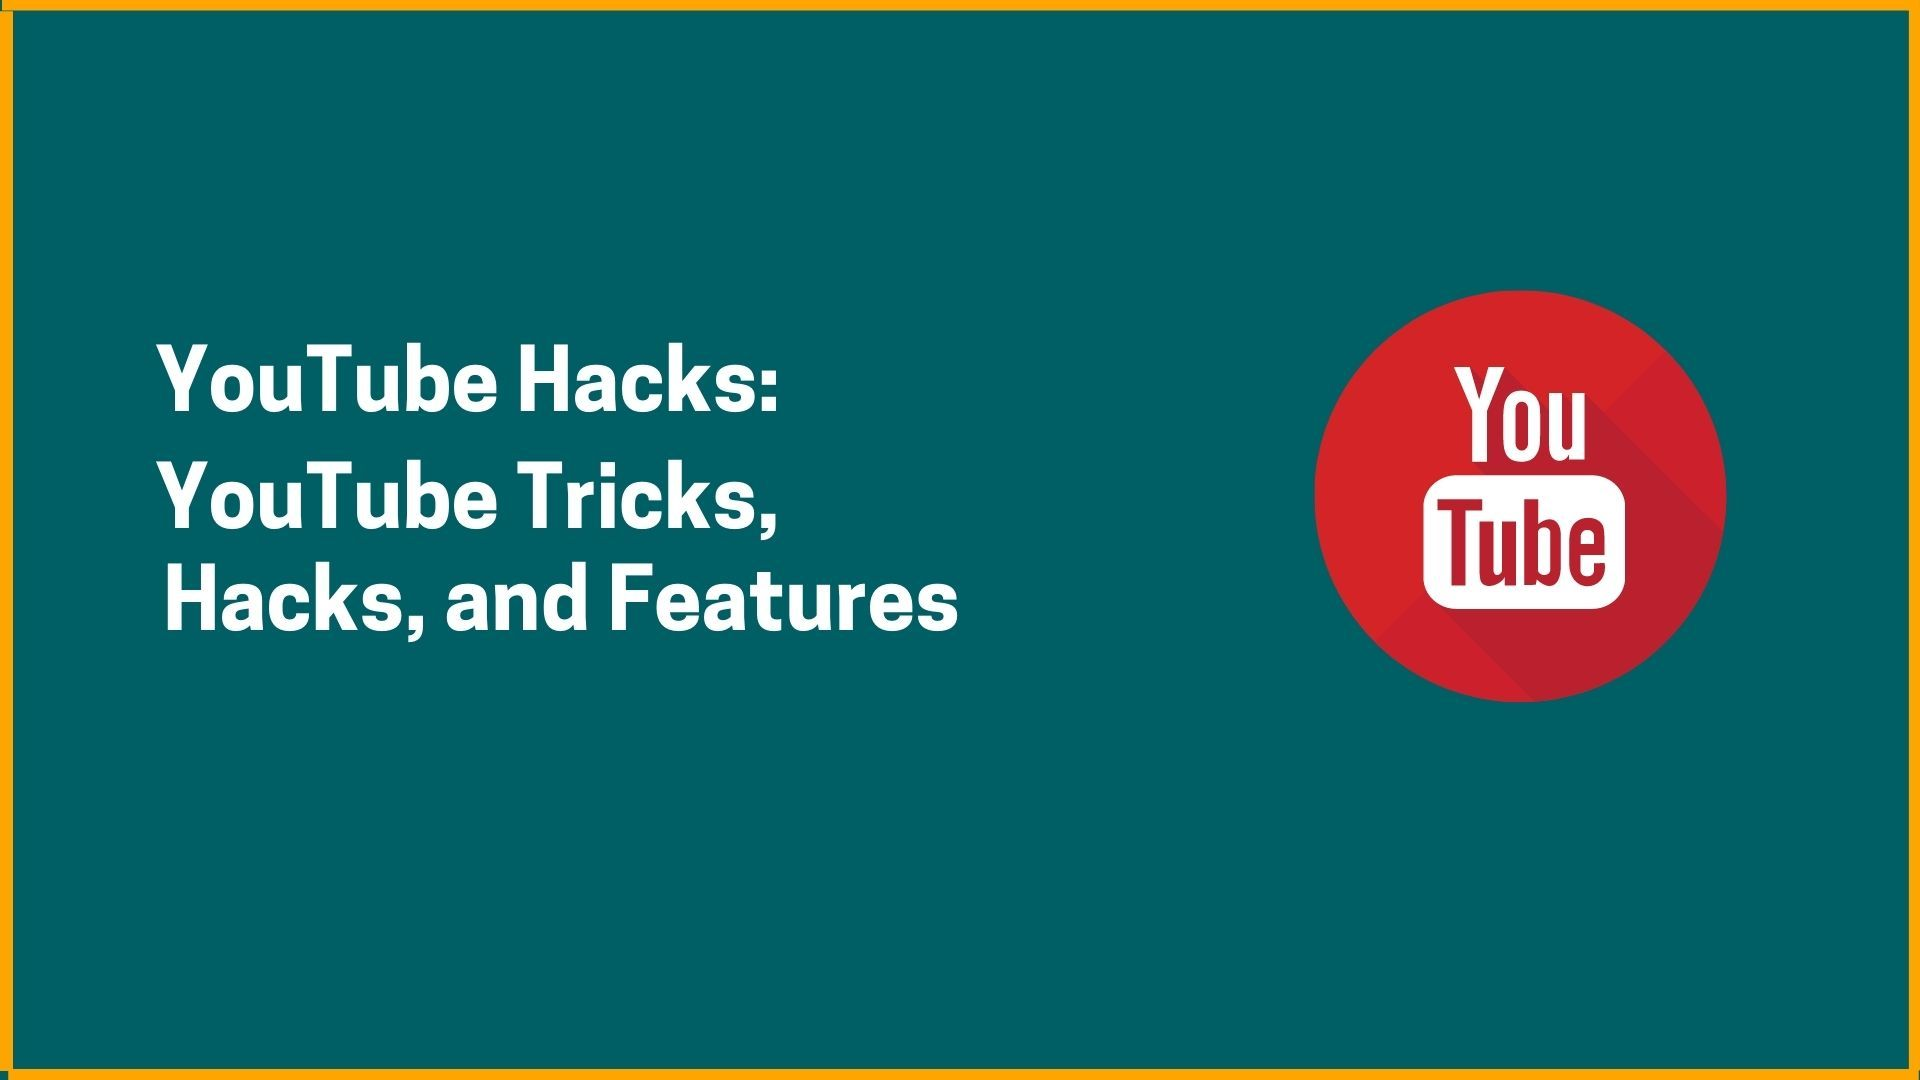 YouTube Hacks: YouTube Tricks, Hacks, And Features